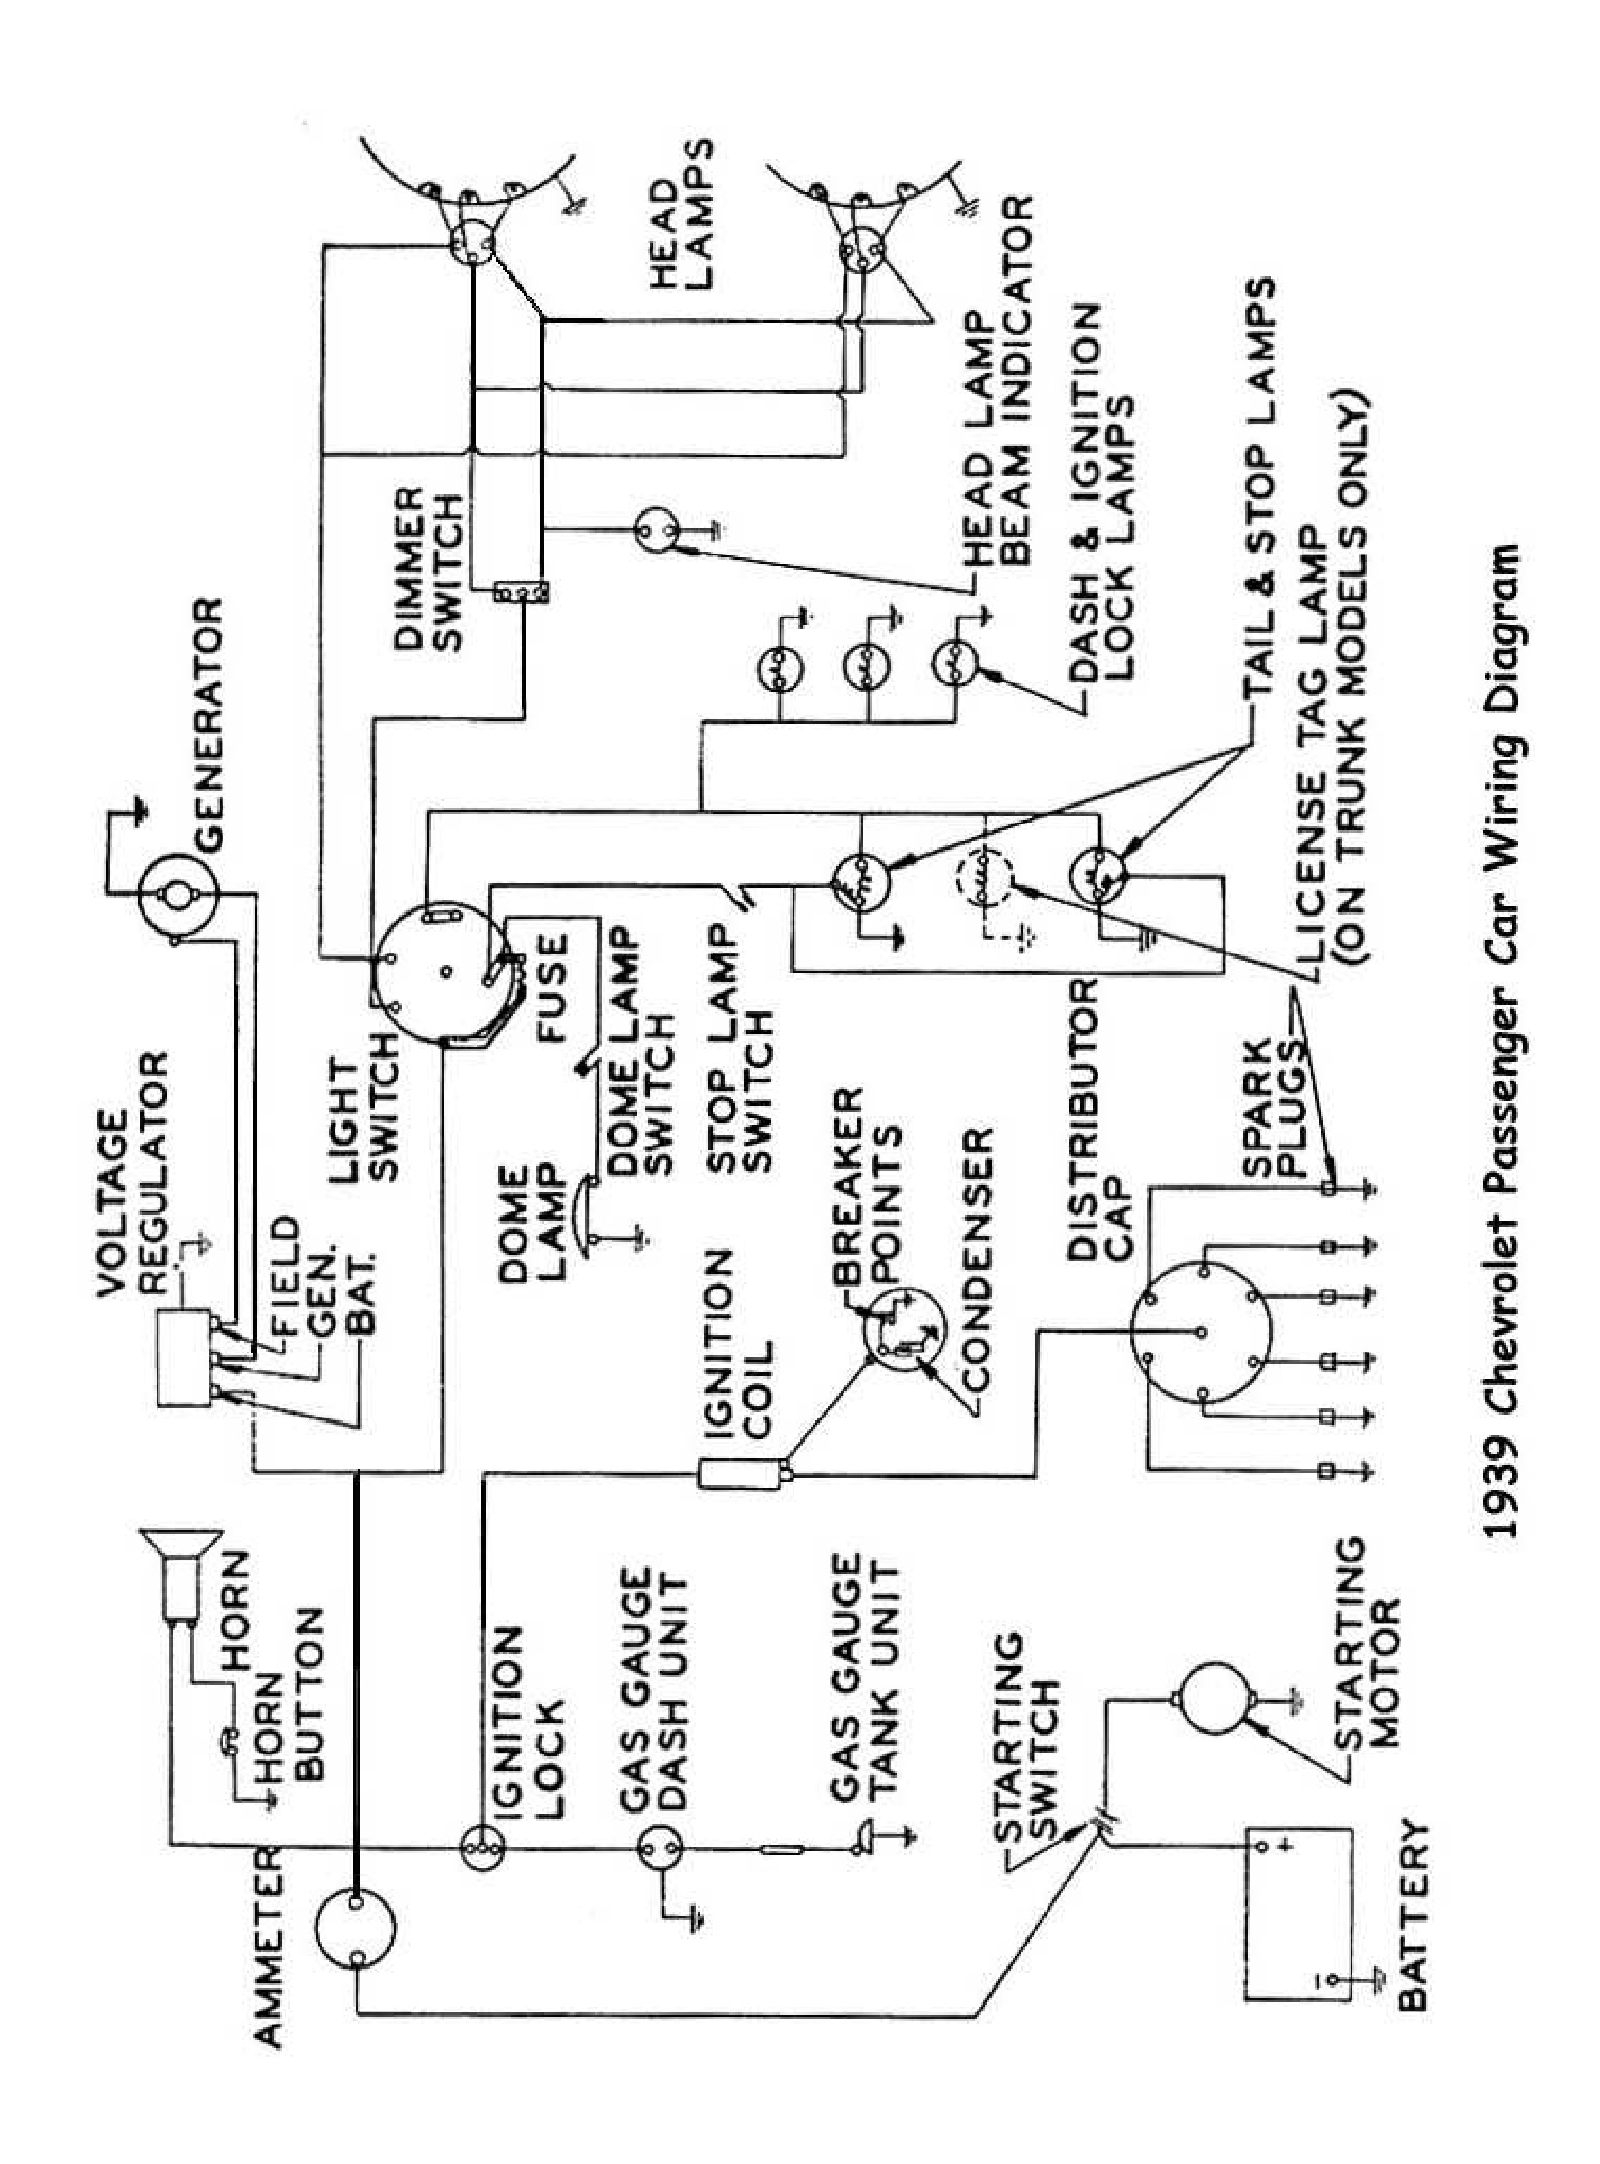 Lift Elevator Wiring Diagram